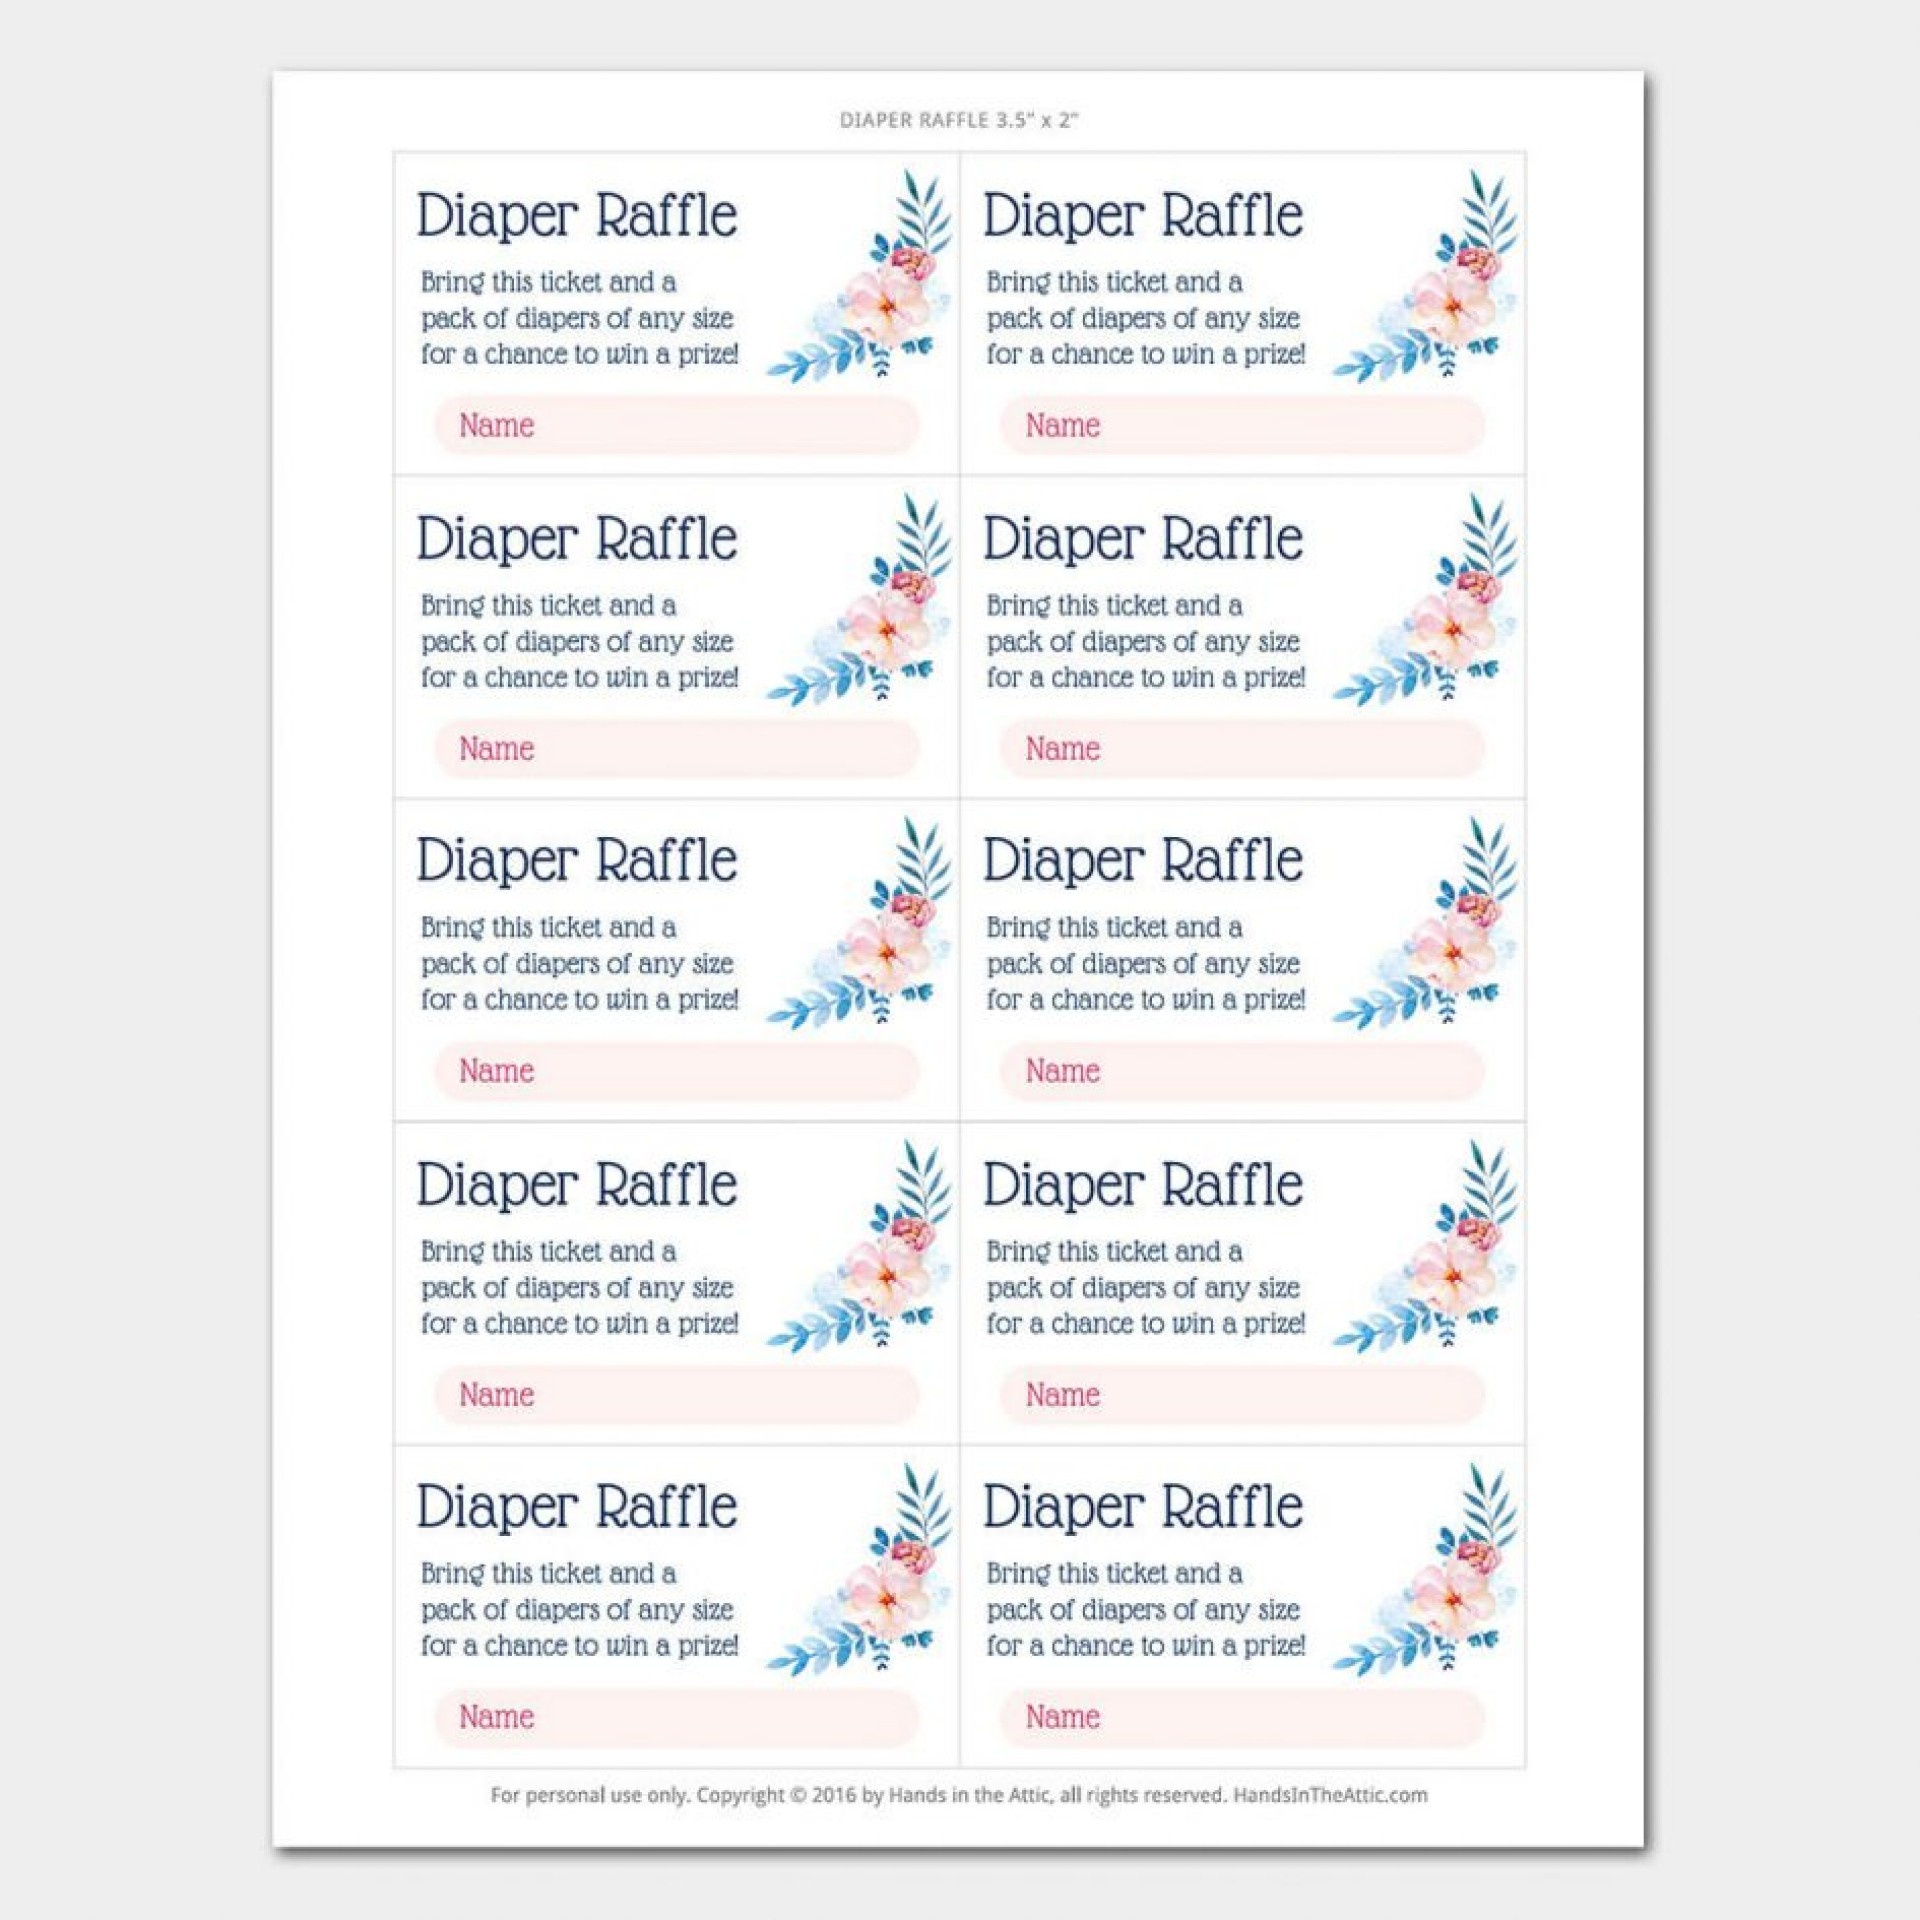 021 Baby Shower Raffle Tickets Template Choice Image Showers Ticket - Free Printable Diaper Raffle Tickets Elephant